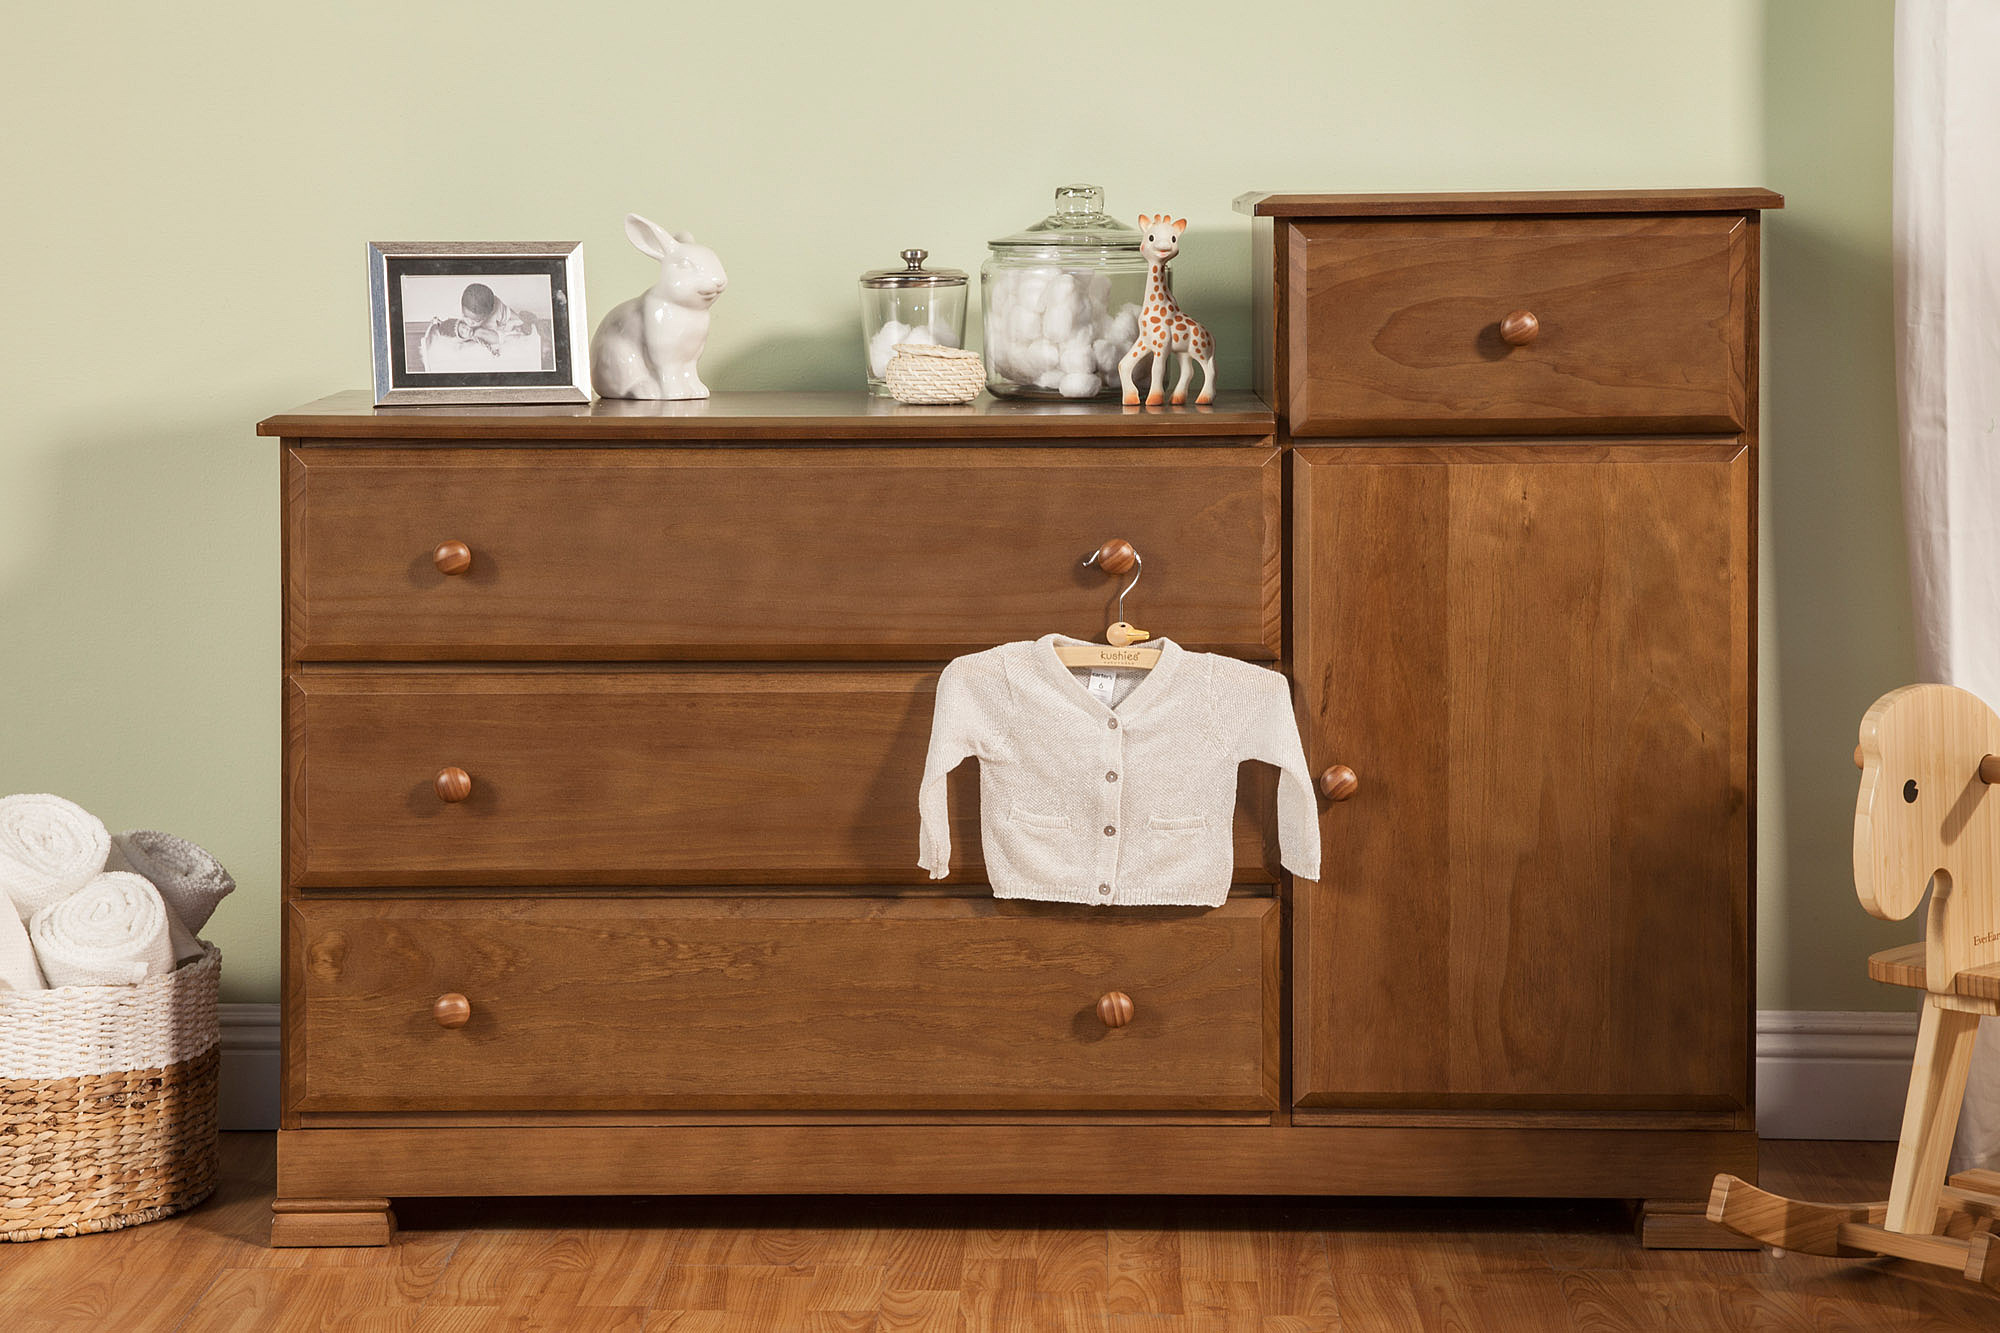 Davinci Kalani Dresser | Davinci Convertible Toddler Bed | Davinci Furniture